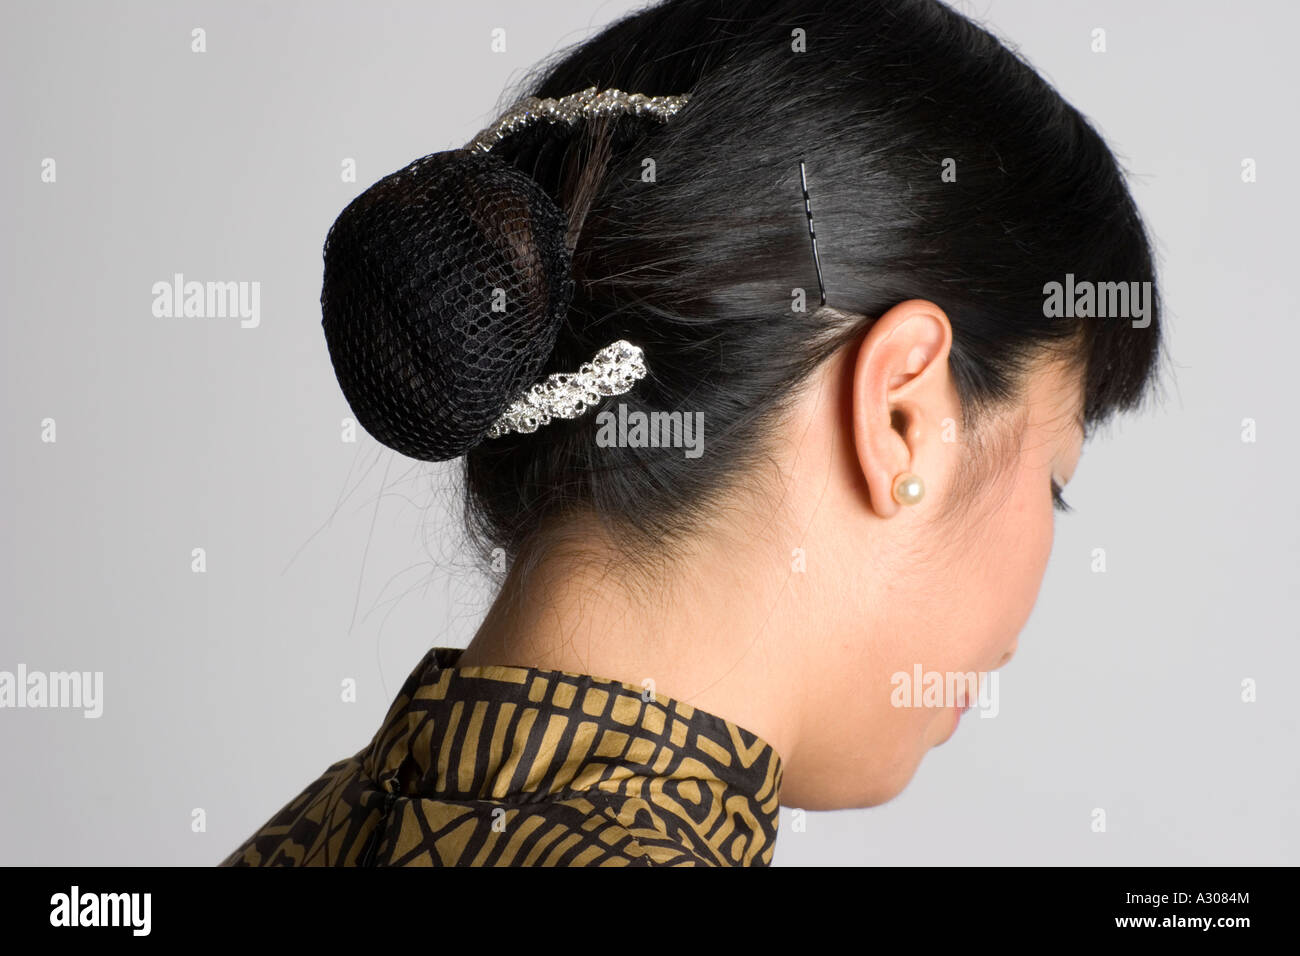 Chinese Woman With Hair Tied Back Stock Photo 10627507 Alamy